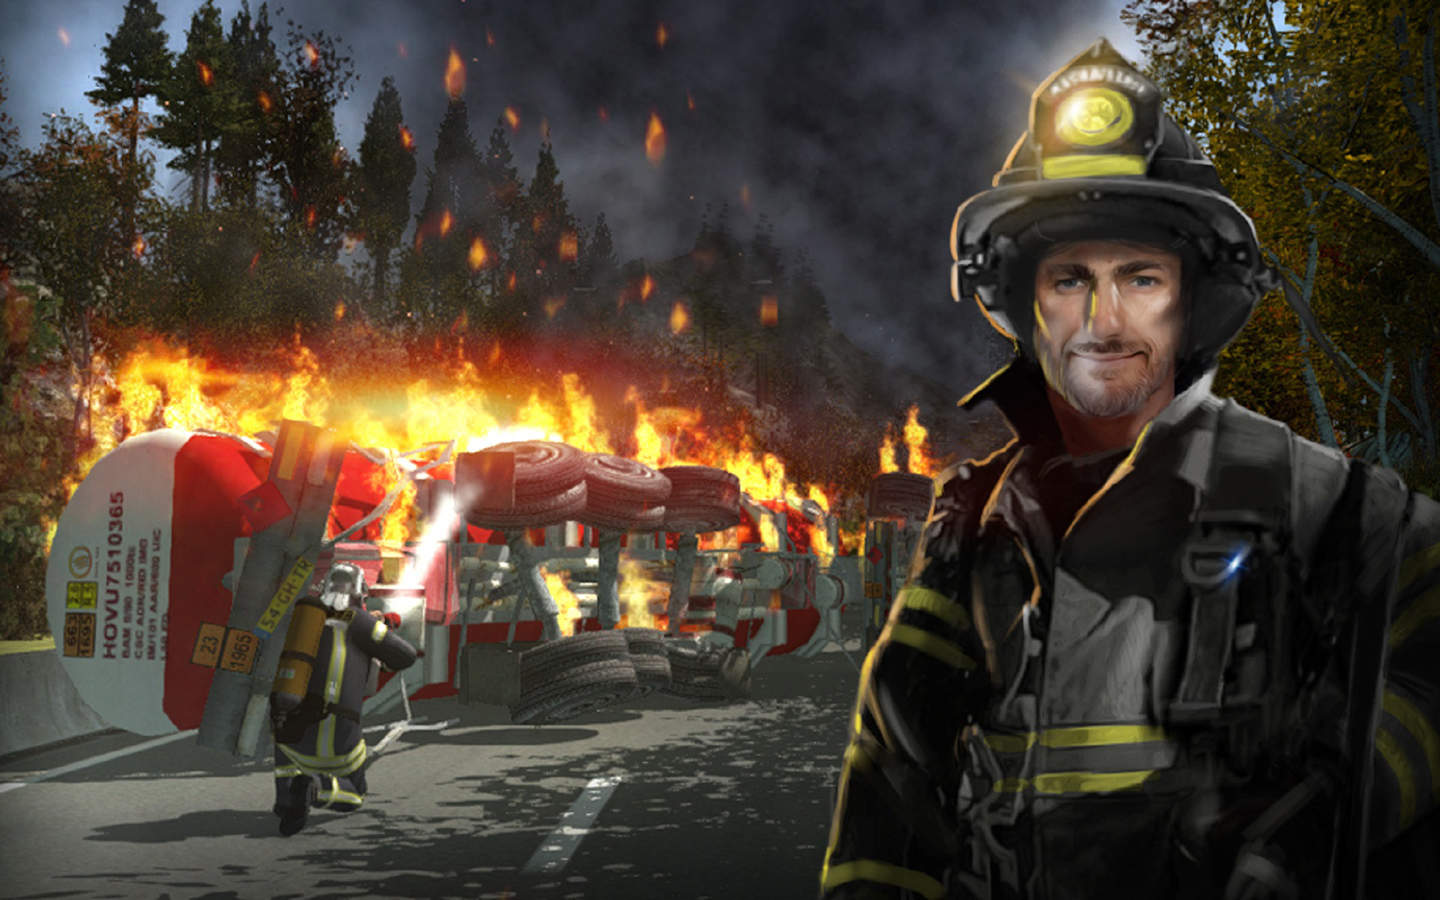 helicopter fire fighting with Firefighters 2014 The Simulation Game on Physical And Mental Trauma Souvenirs Battle Afghanistan 280405 also Concept Robot Art By Daryl Mandryk further Index additionally 35th Anniversary Of The Fall Of Saigon 5 besides As350 B2.